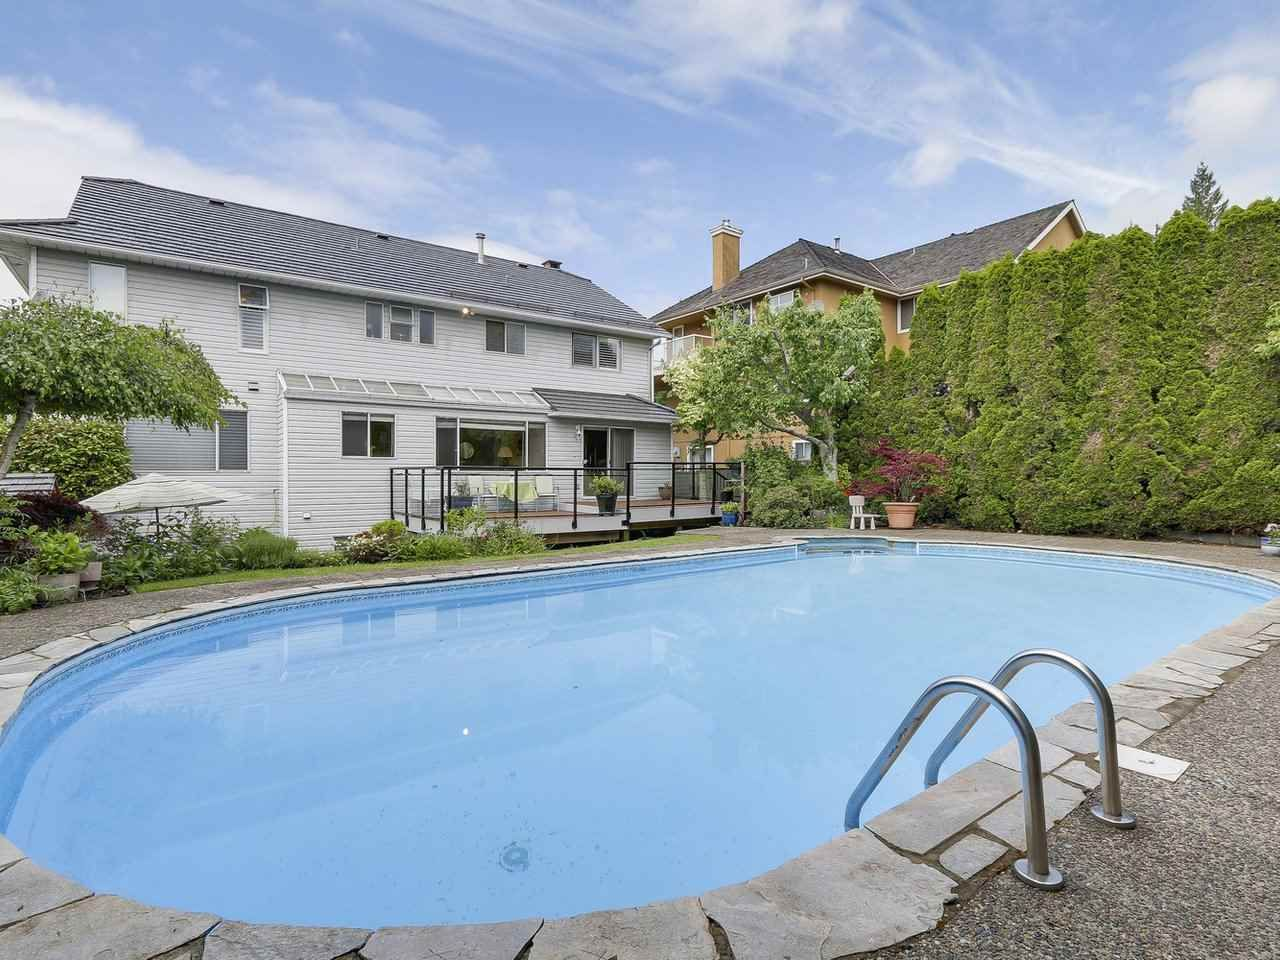 Main Photo: 240 ROCHE POINT DRIVE in North Vancouver: Roche Point House for sale : MLS®# R2172946